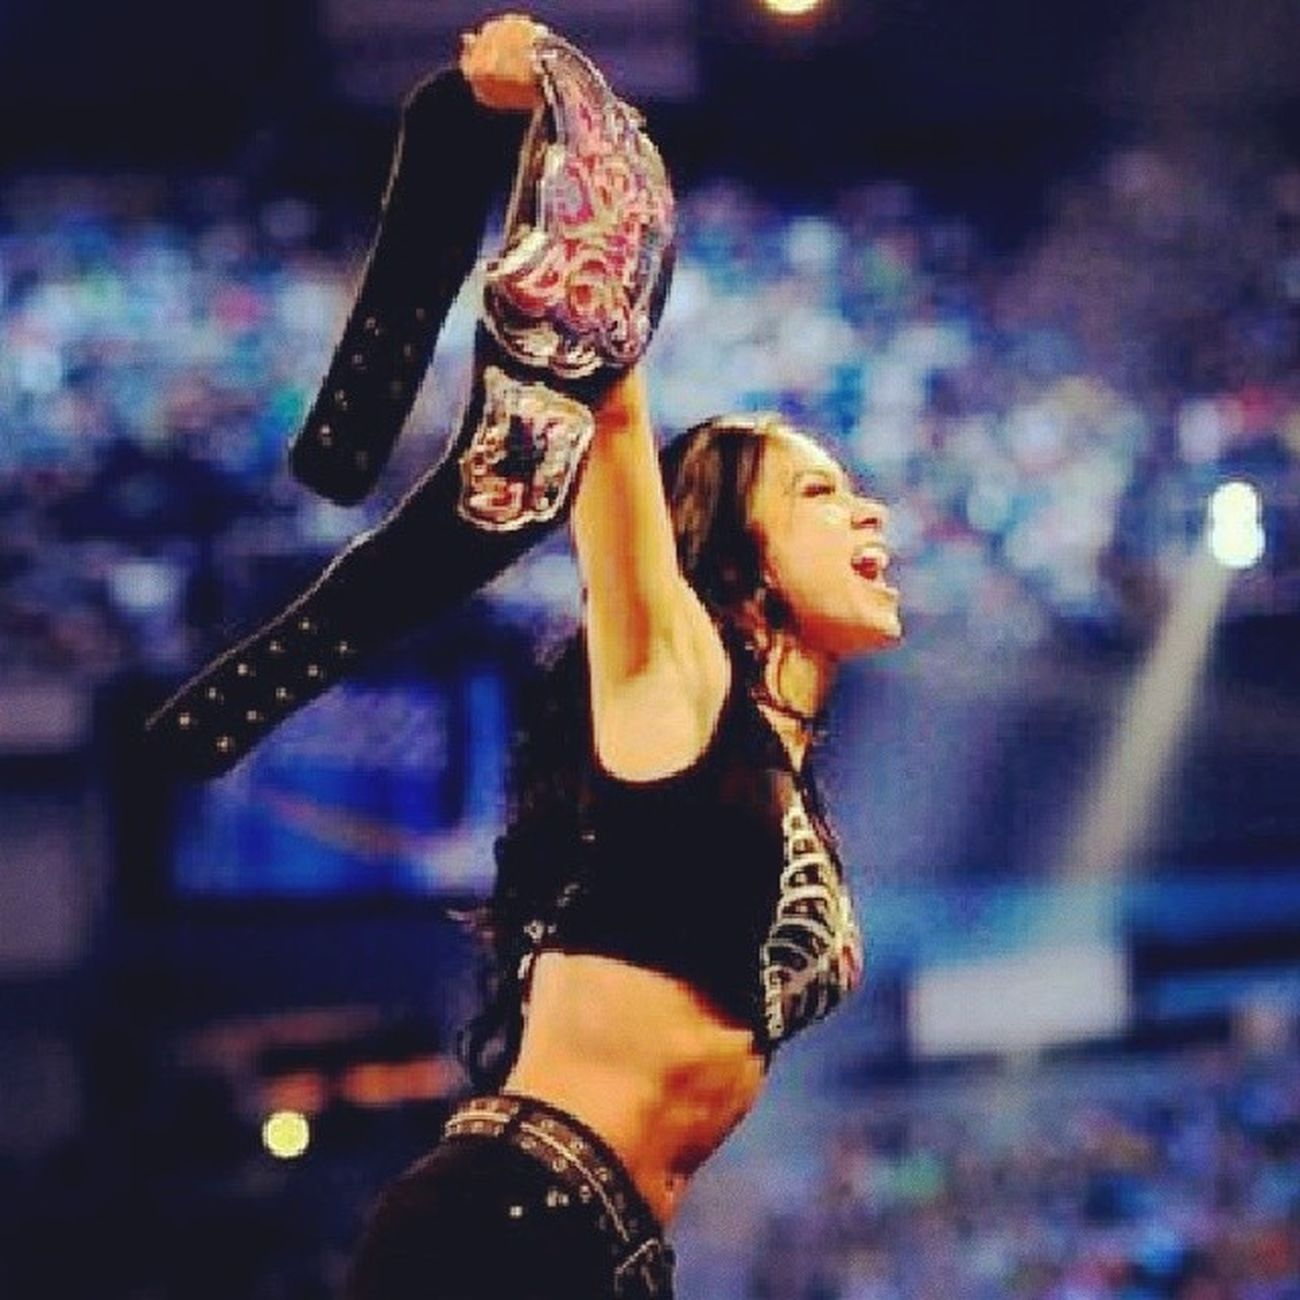 Sayang retained her title. Yeayyy!!! Still the Diva's Champions. Thegreatestever .